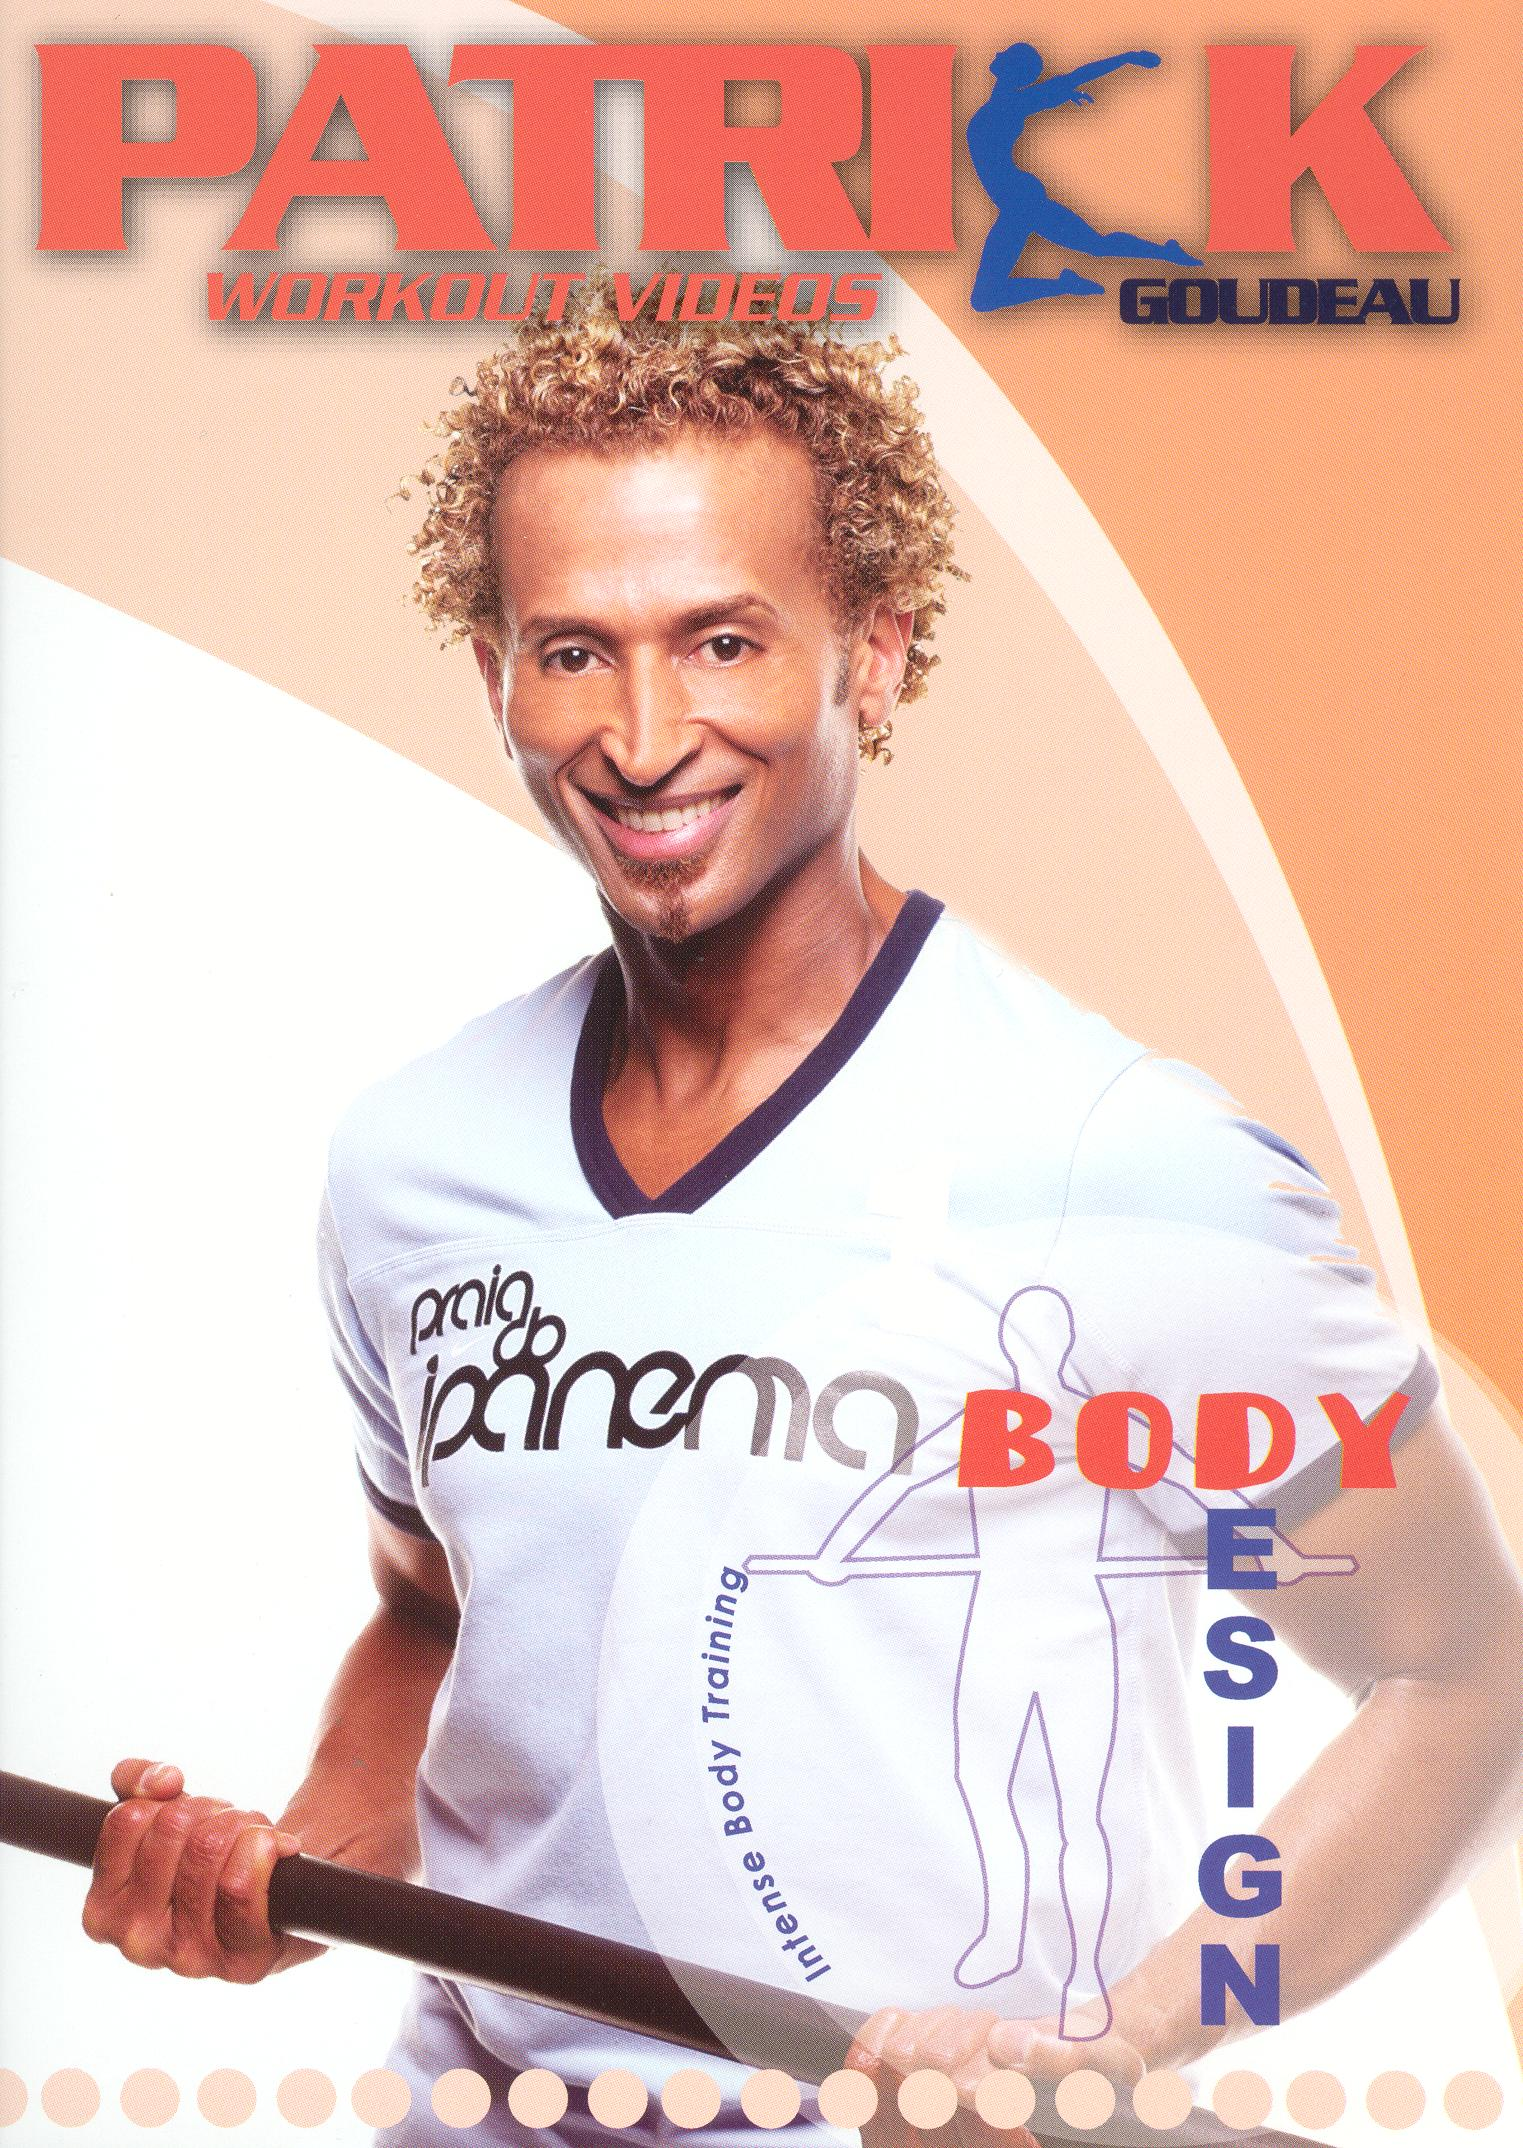 Body Design with Patrick Goudeau